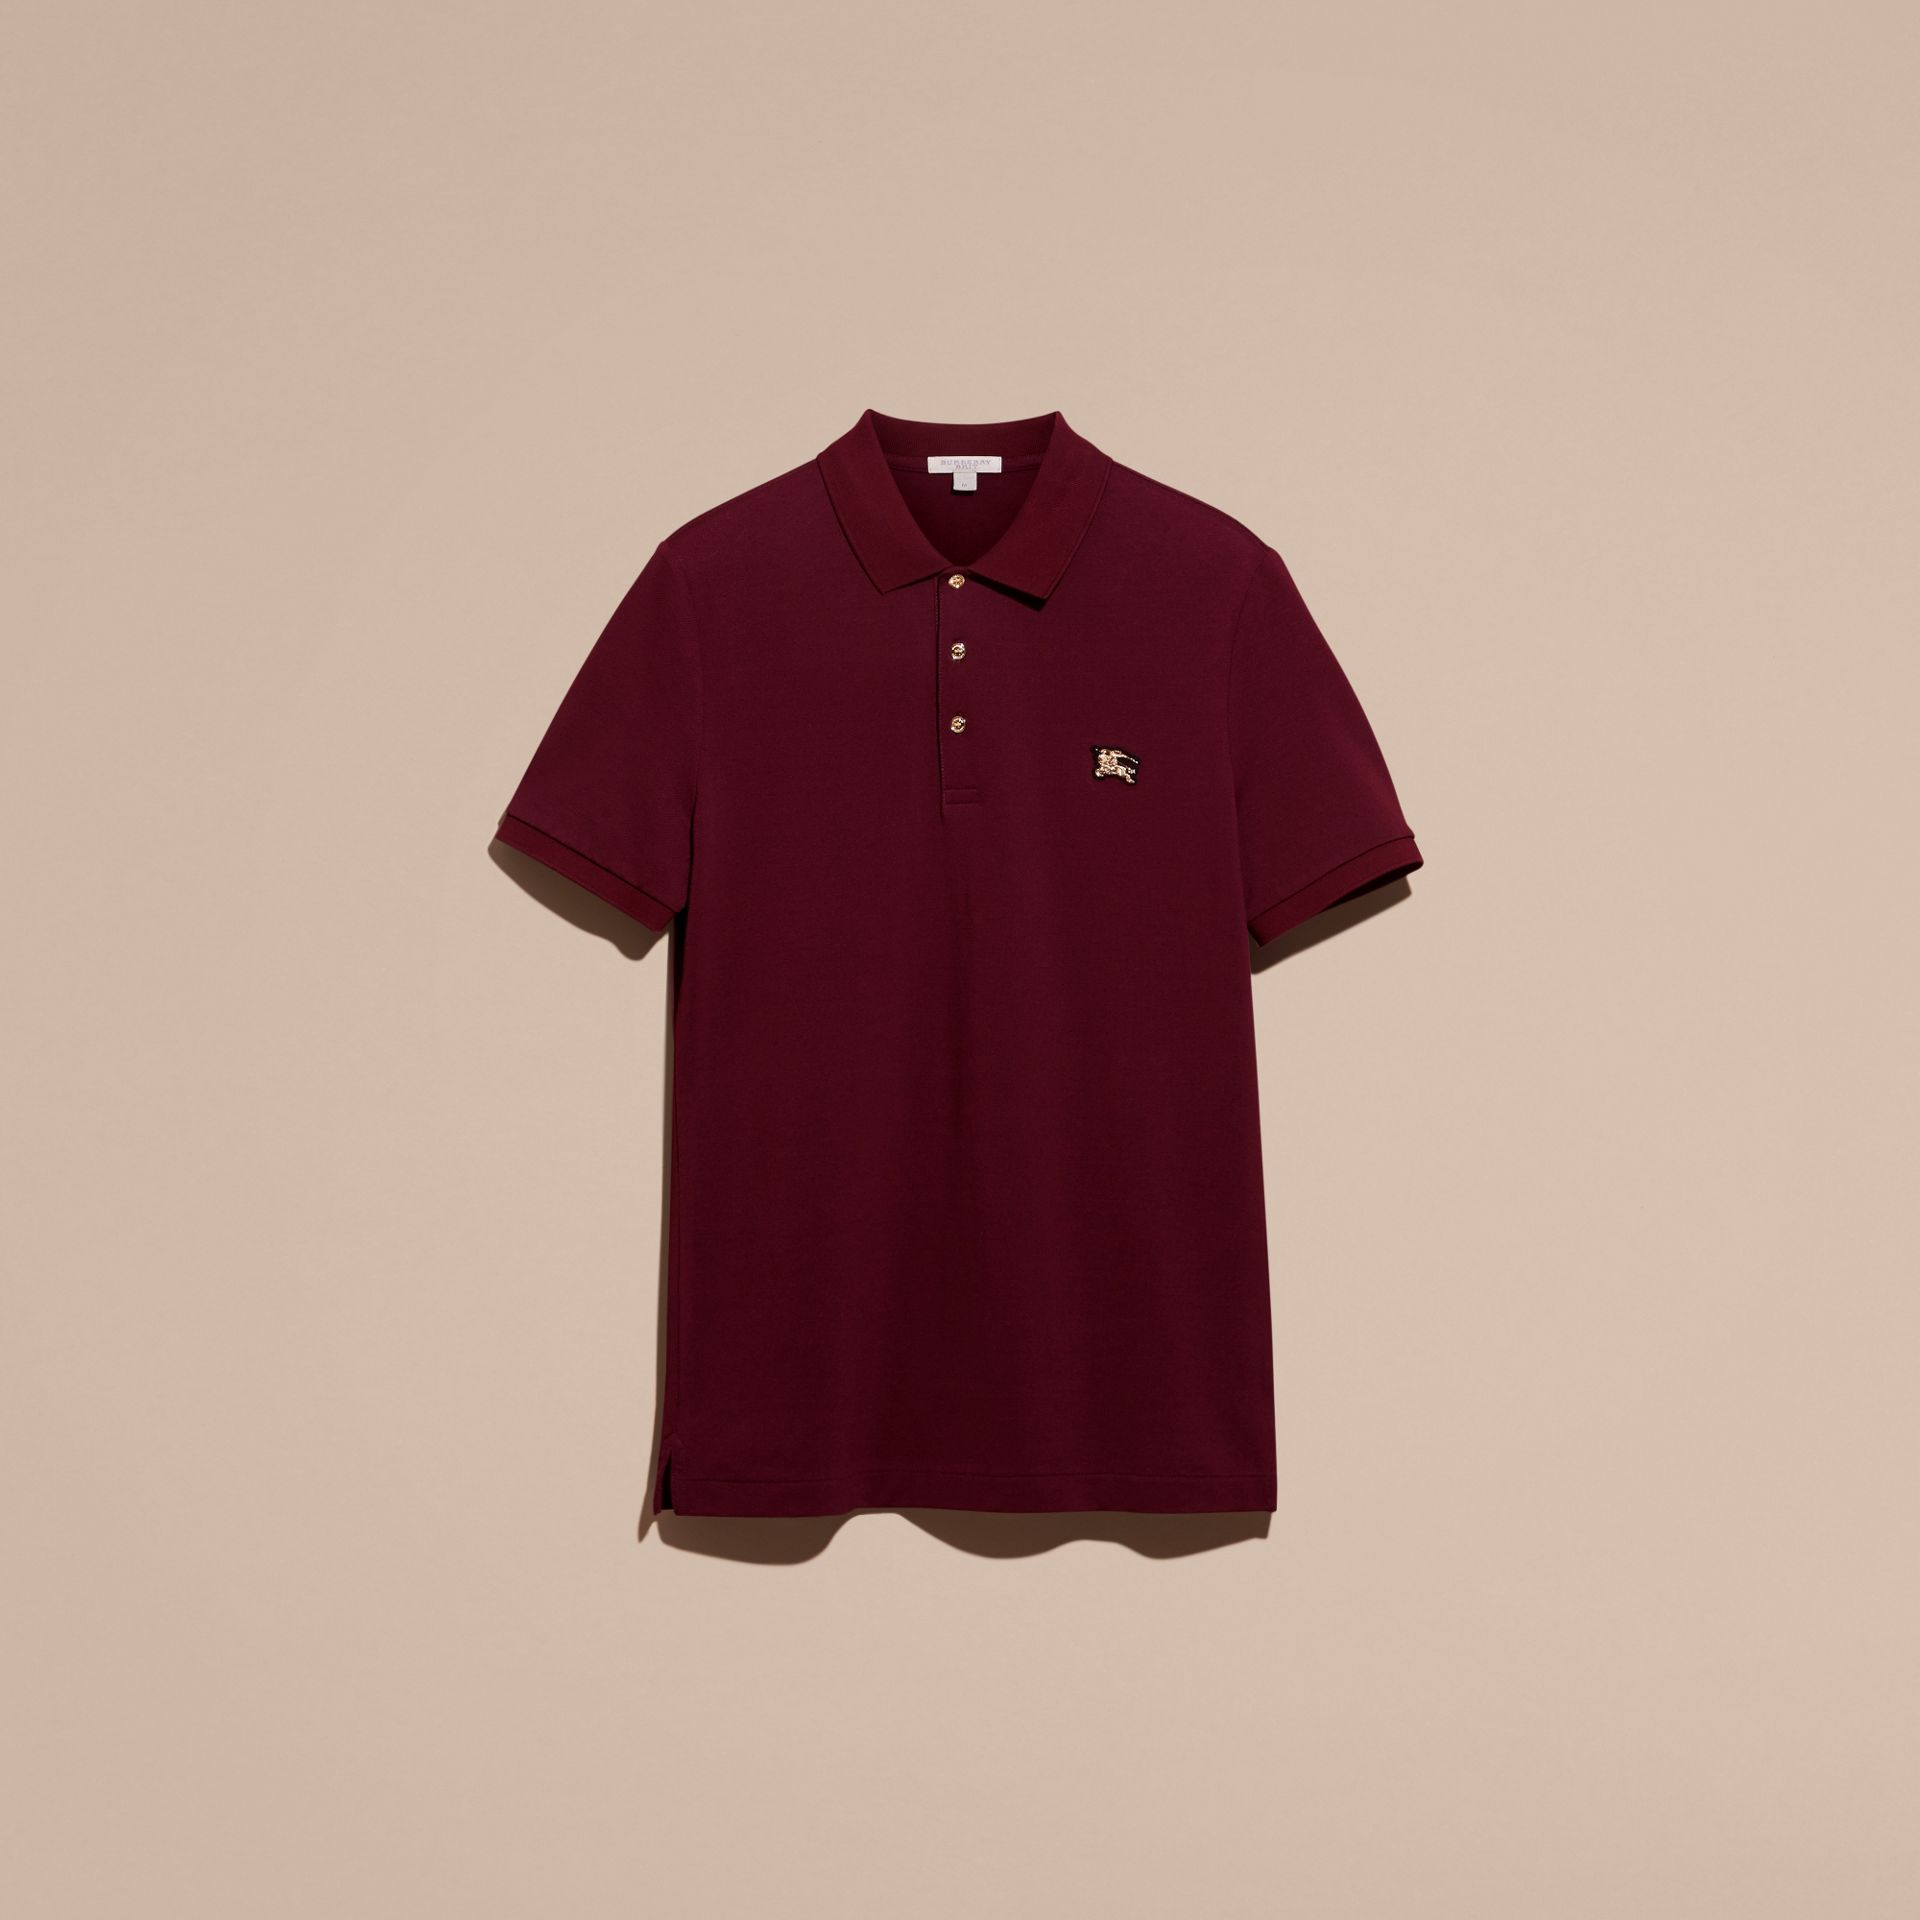 Cotton Piqué Polo Shirt in Burgundy Red - Men | Burberry - gallery image 4